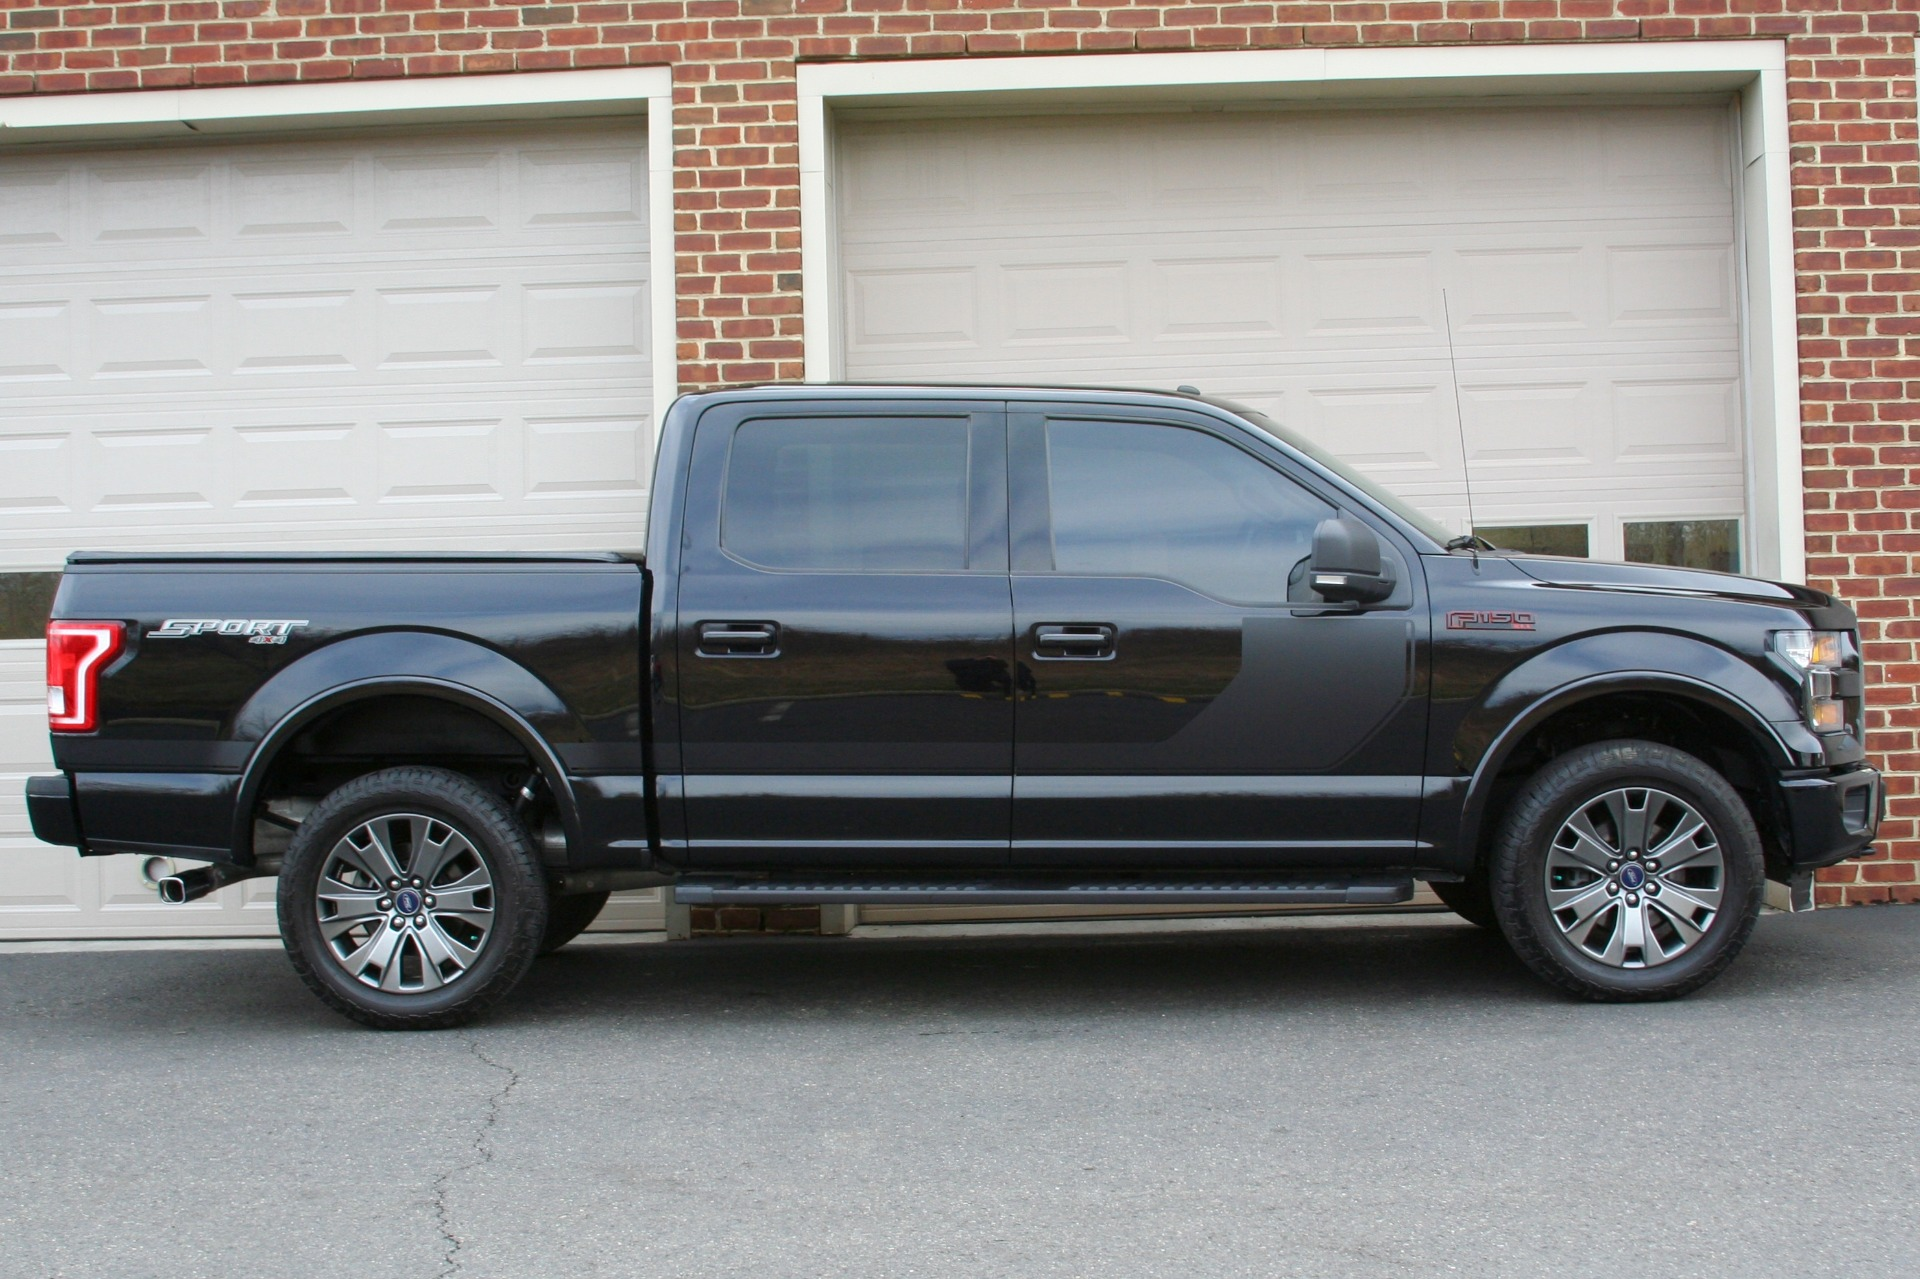 Ford Dealers Nj >> 2016 Ford F-150 XLT Sport Stock # A90775 for sale near Edgewater Park, NJ | NJ Ford Dealer